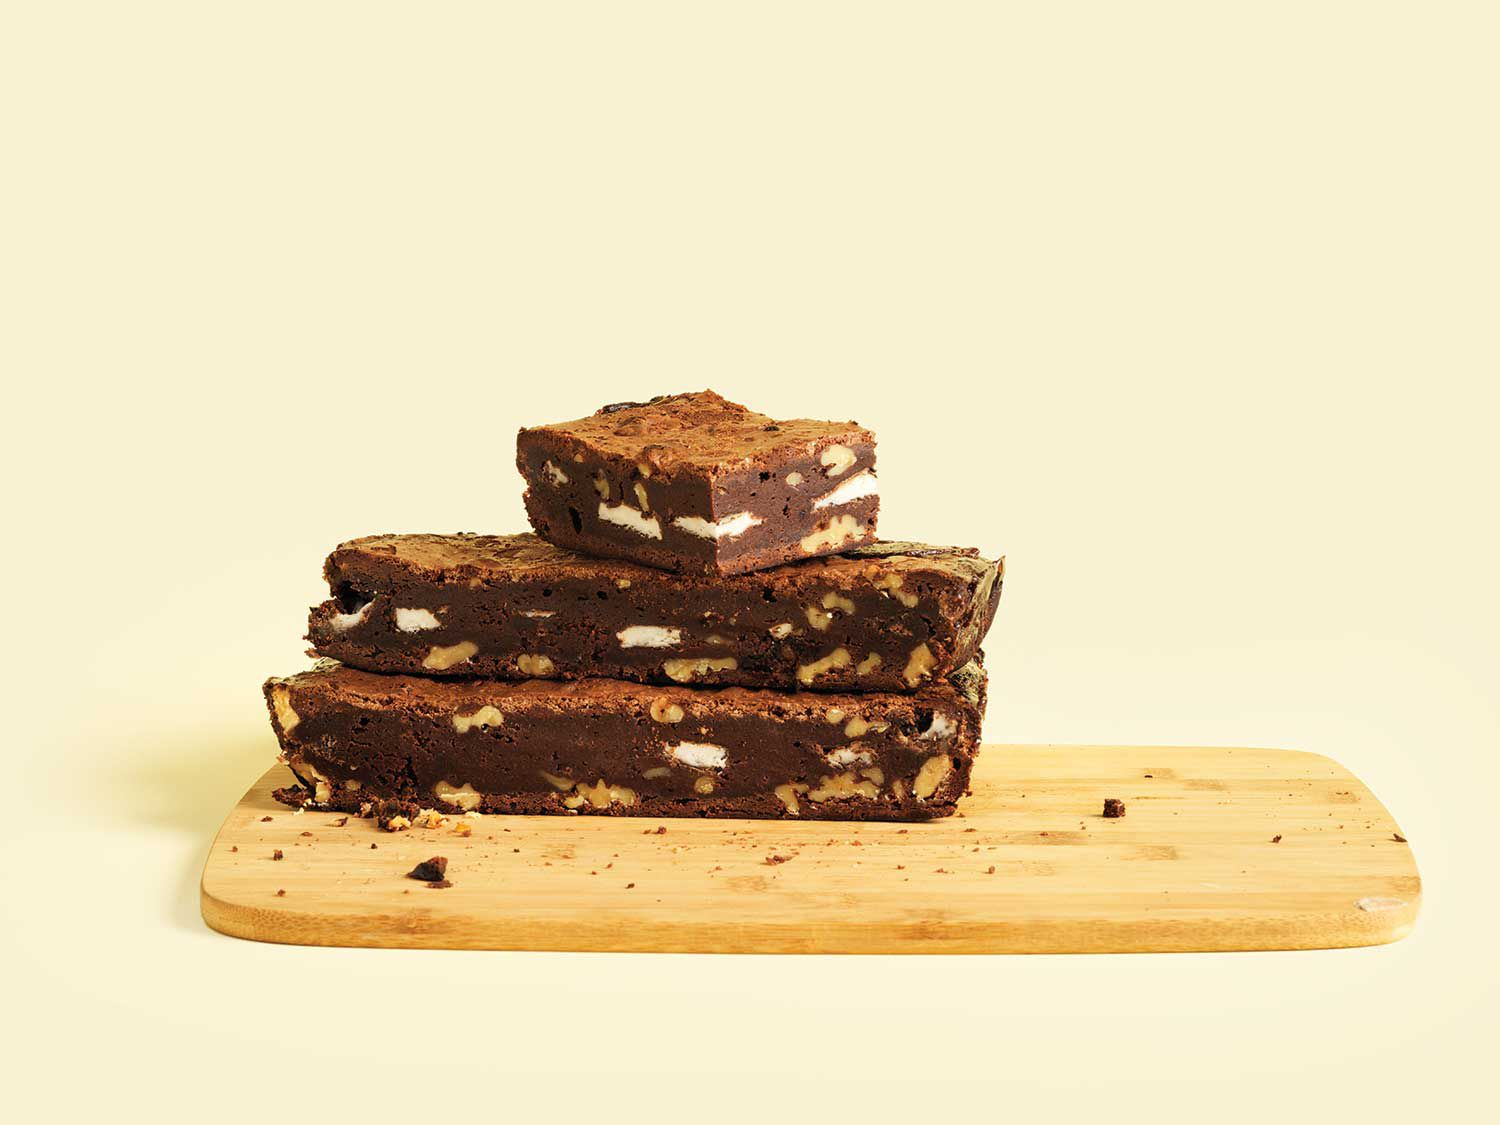 """<a href=""""https://www.saveur.com/article/Recipes/Palm-Beach-Brownies-with-Chocolate-Covered-Mints/"""">Get the recipe for Palm Beach Brownies with Chocolate-Covered Mints »</a>"""